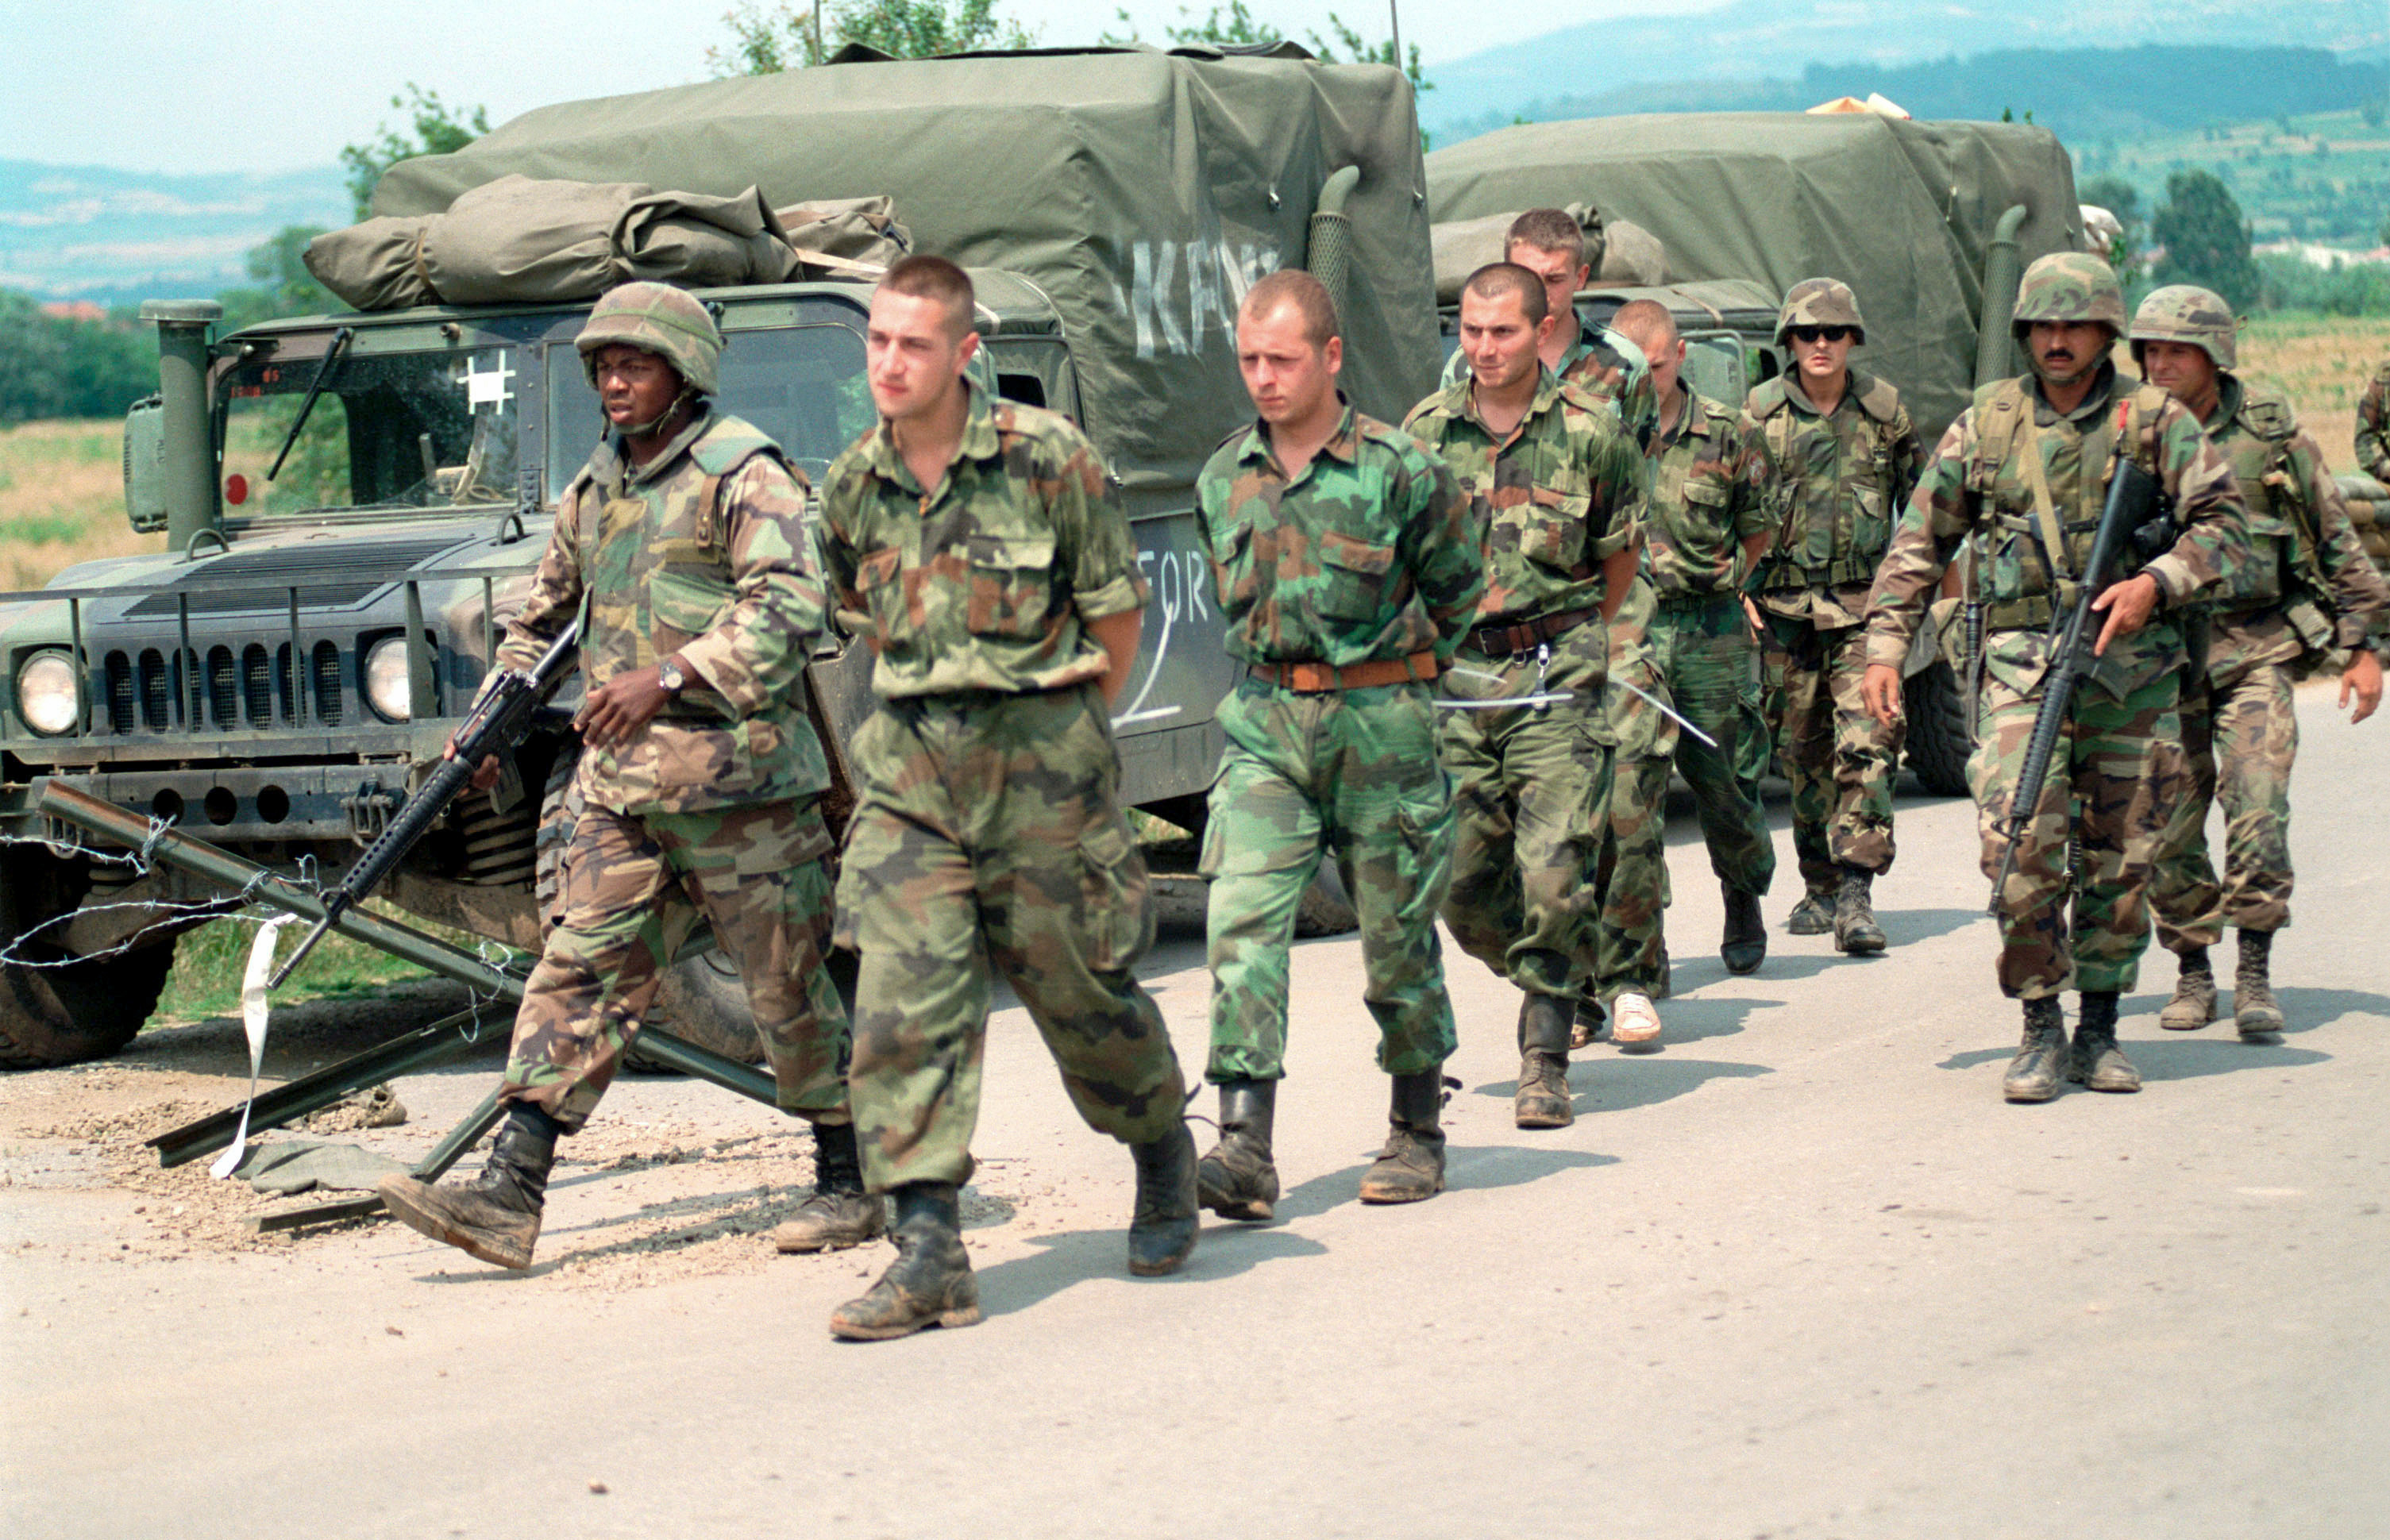 U.S. Marines escorting Yugoslavian POWs in Kosovo to be handed over to Yugoslavian authorities